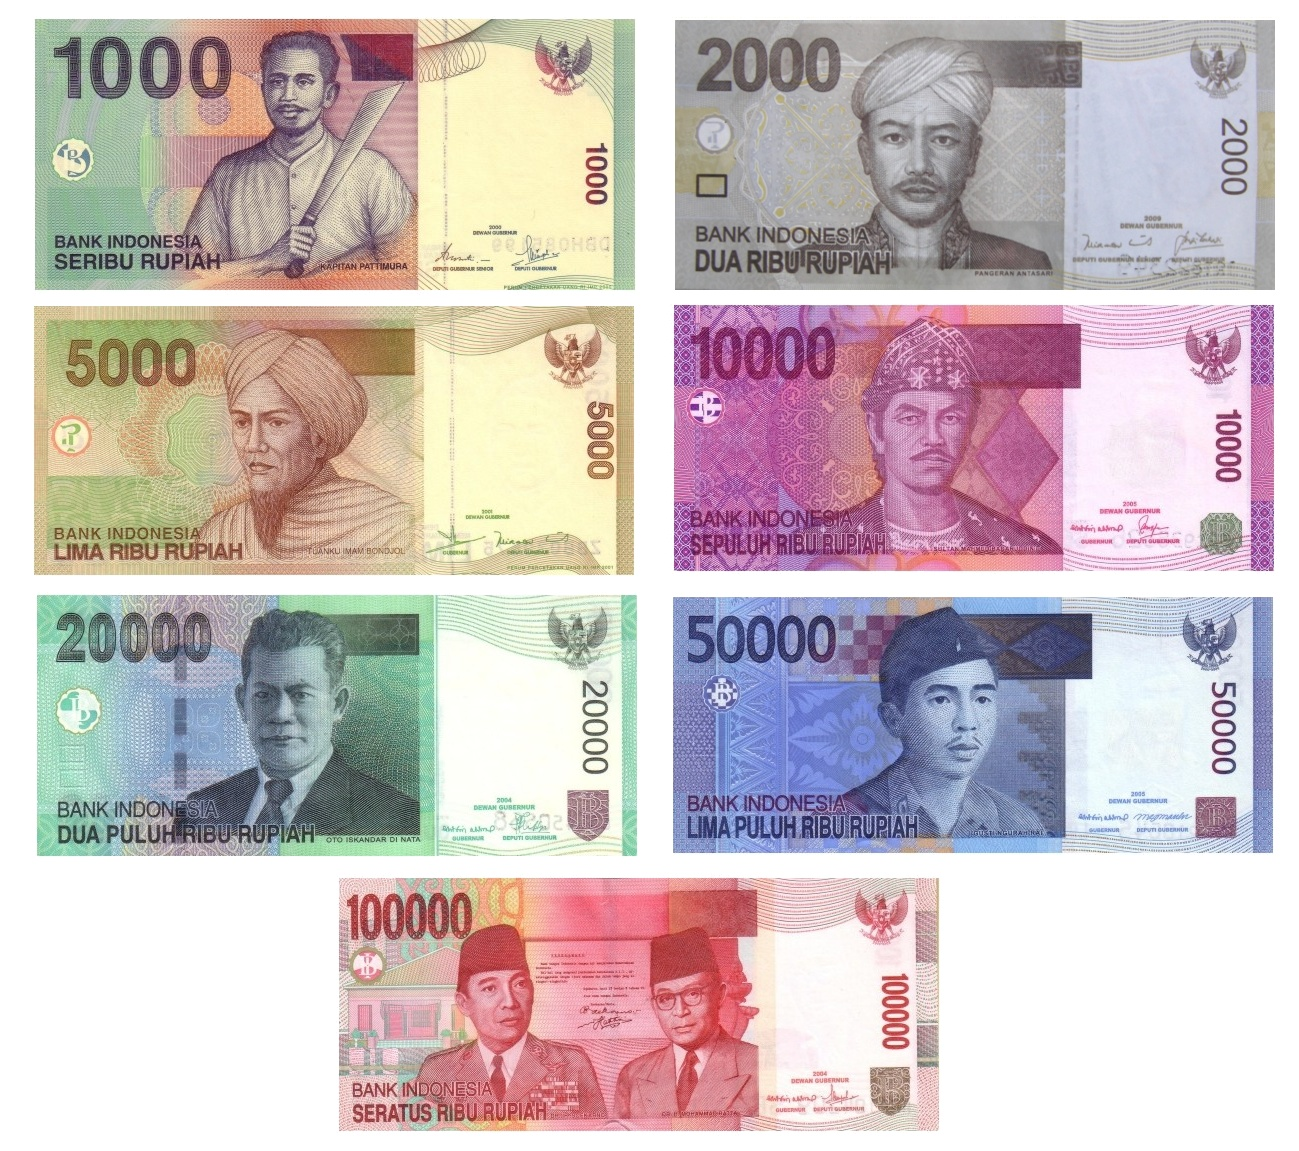 https://upload.wikimedia.org/wikipedia/commons/4/4a/Indonesian_Rupiah_(IDR)_banknotes2009.jpg